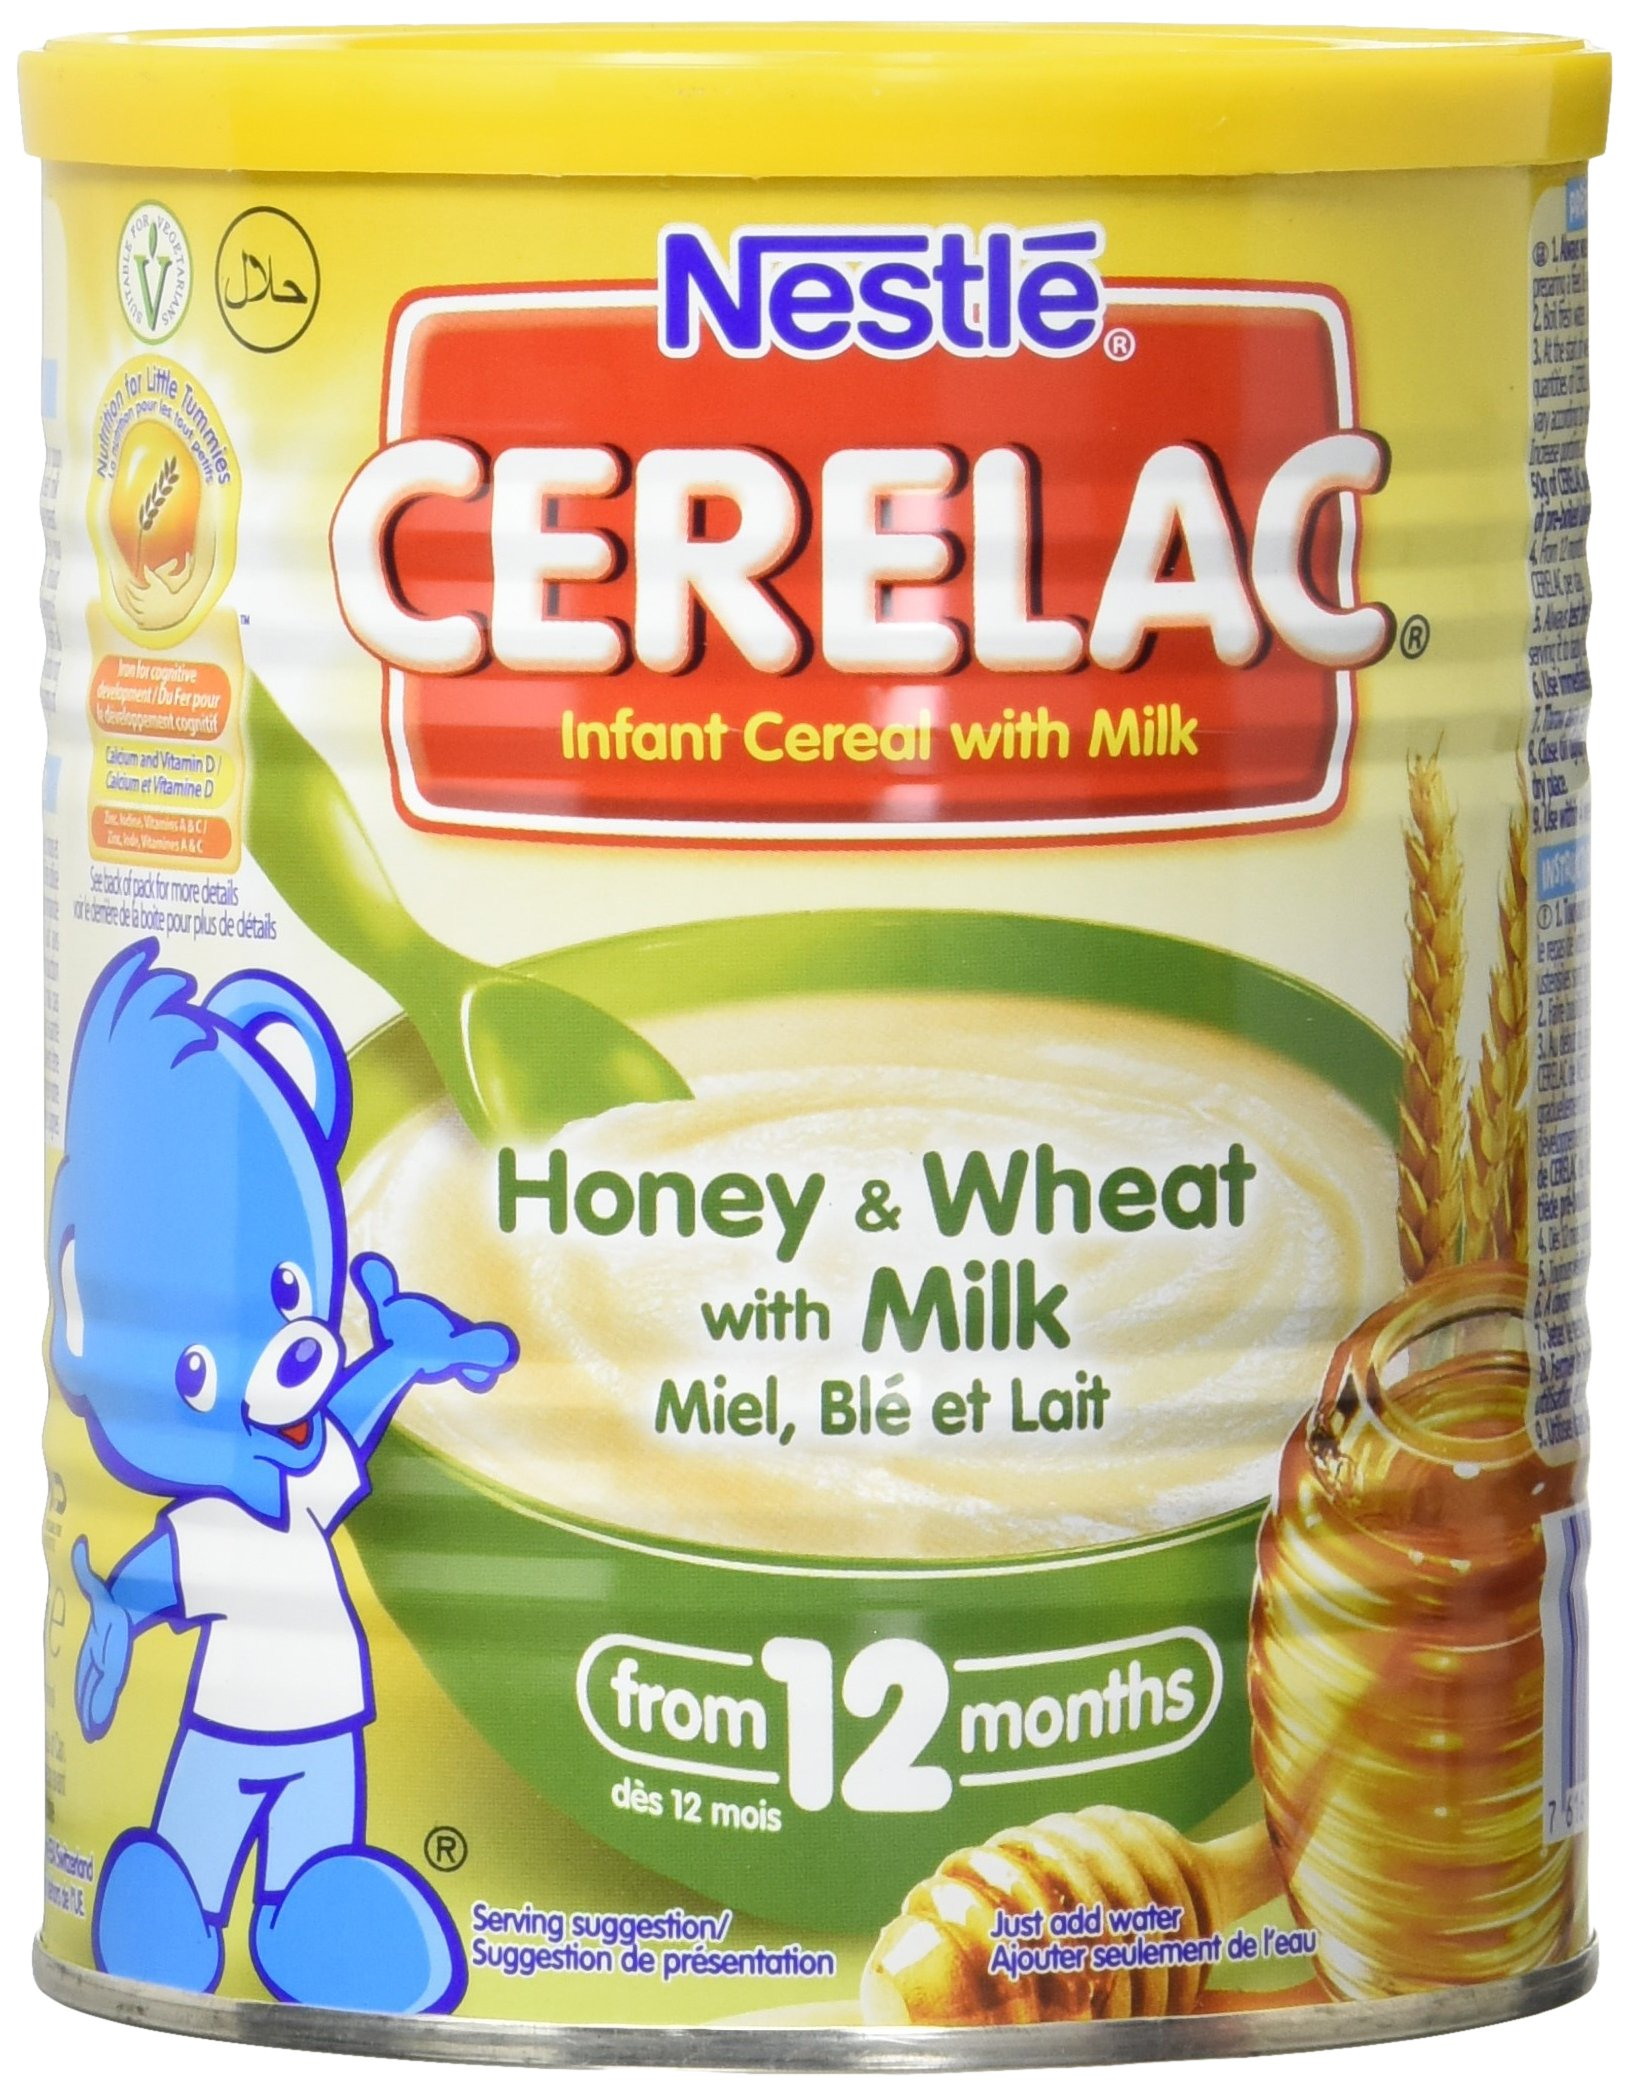 Nestle Cerelac, Honey and Wheat with Milk, 14.11 Ounce Can by Cerelac (Image #1)